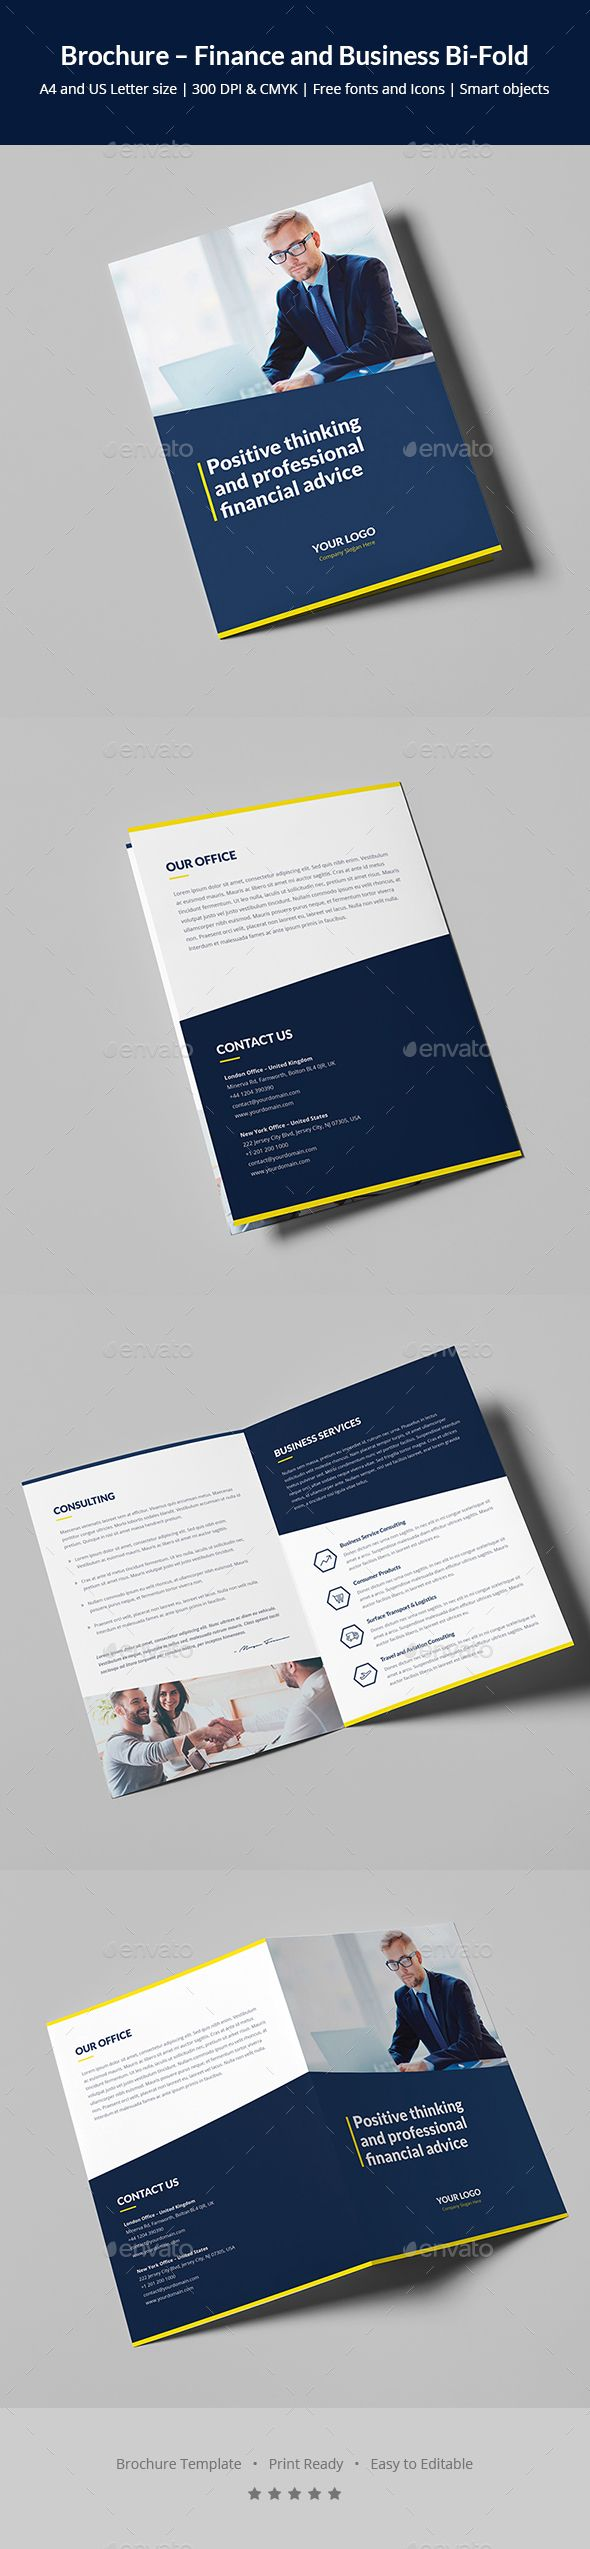 Brochure  Finance And Business BiFold  Business Company